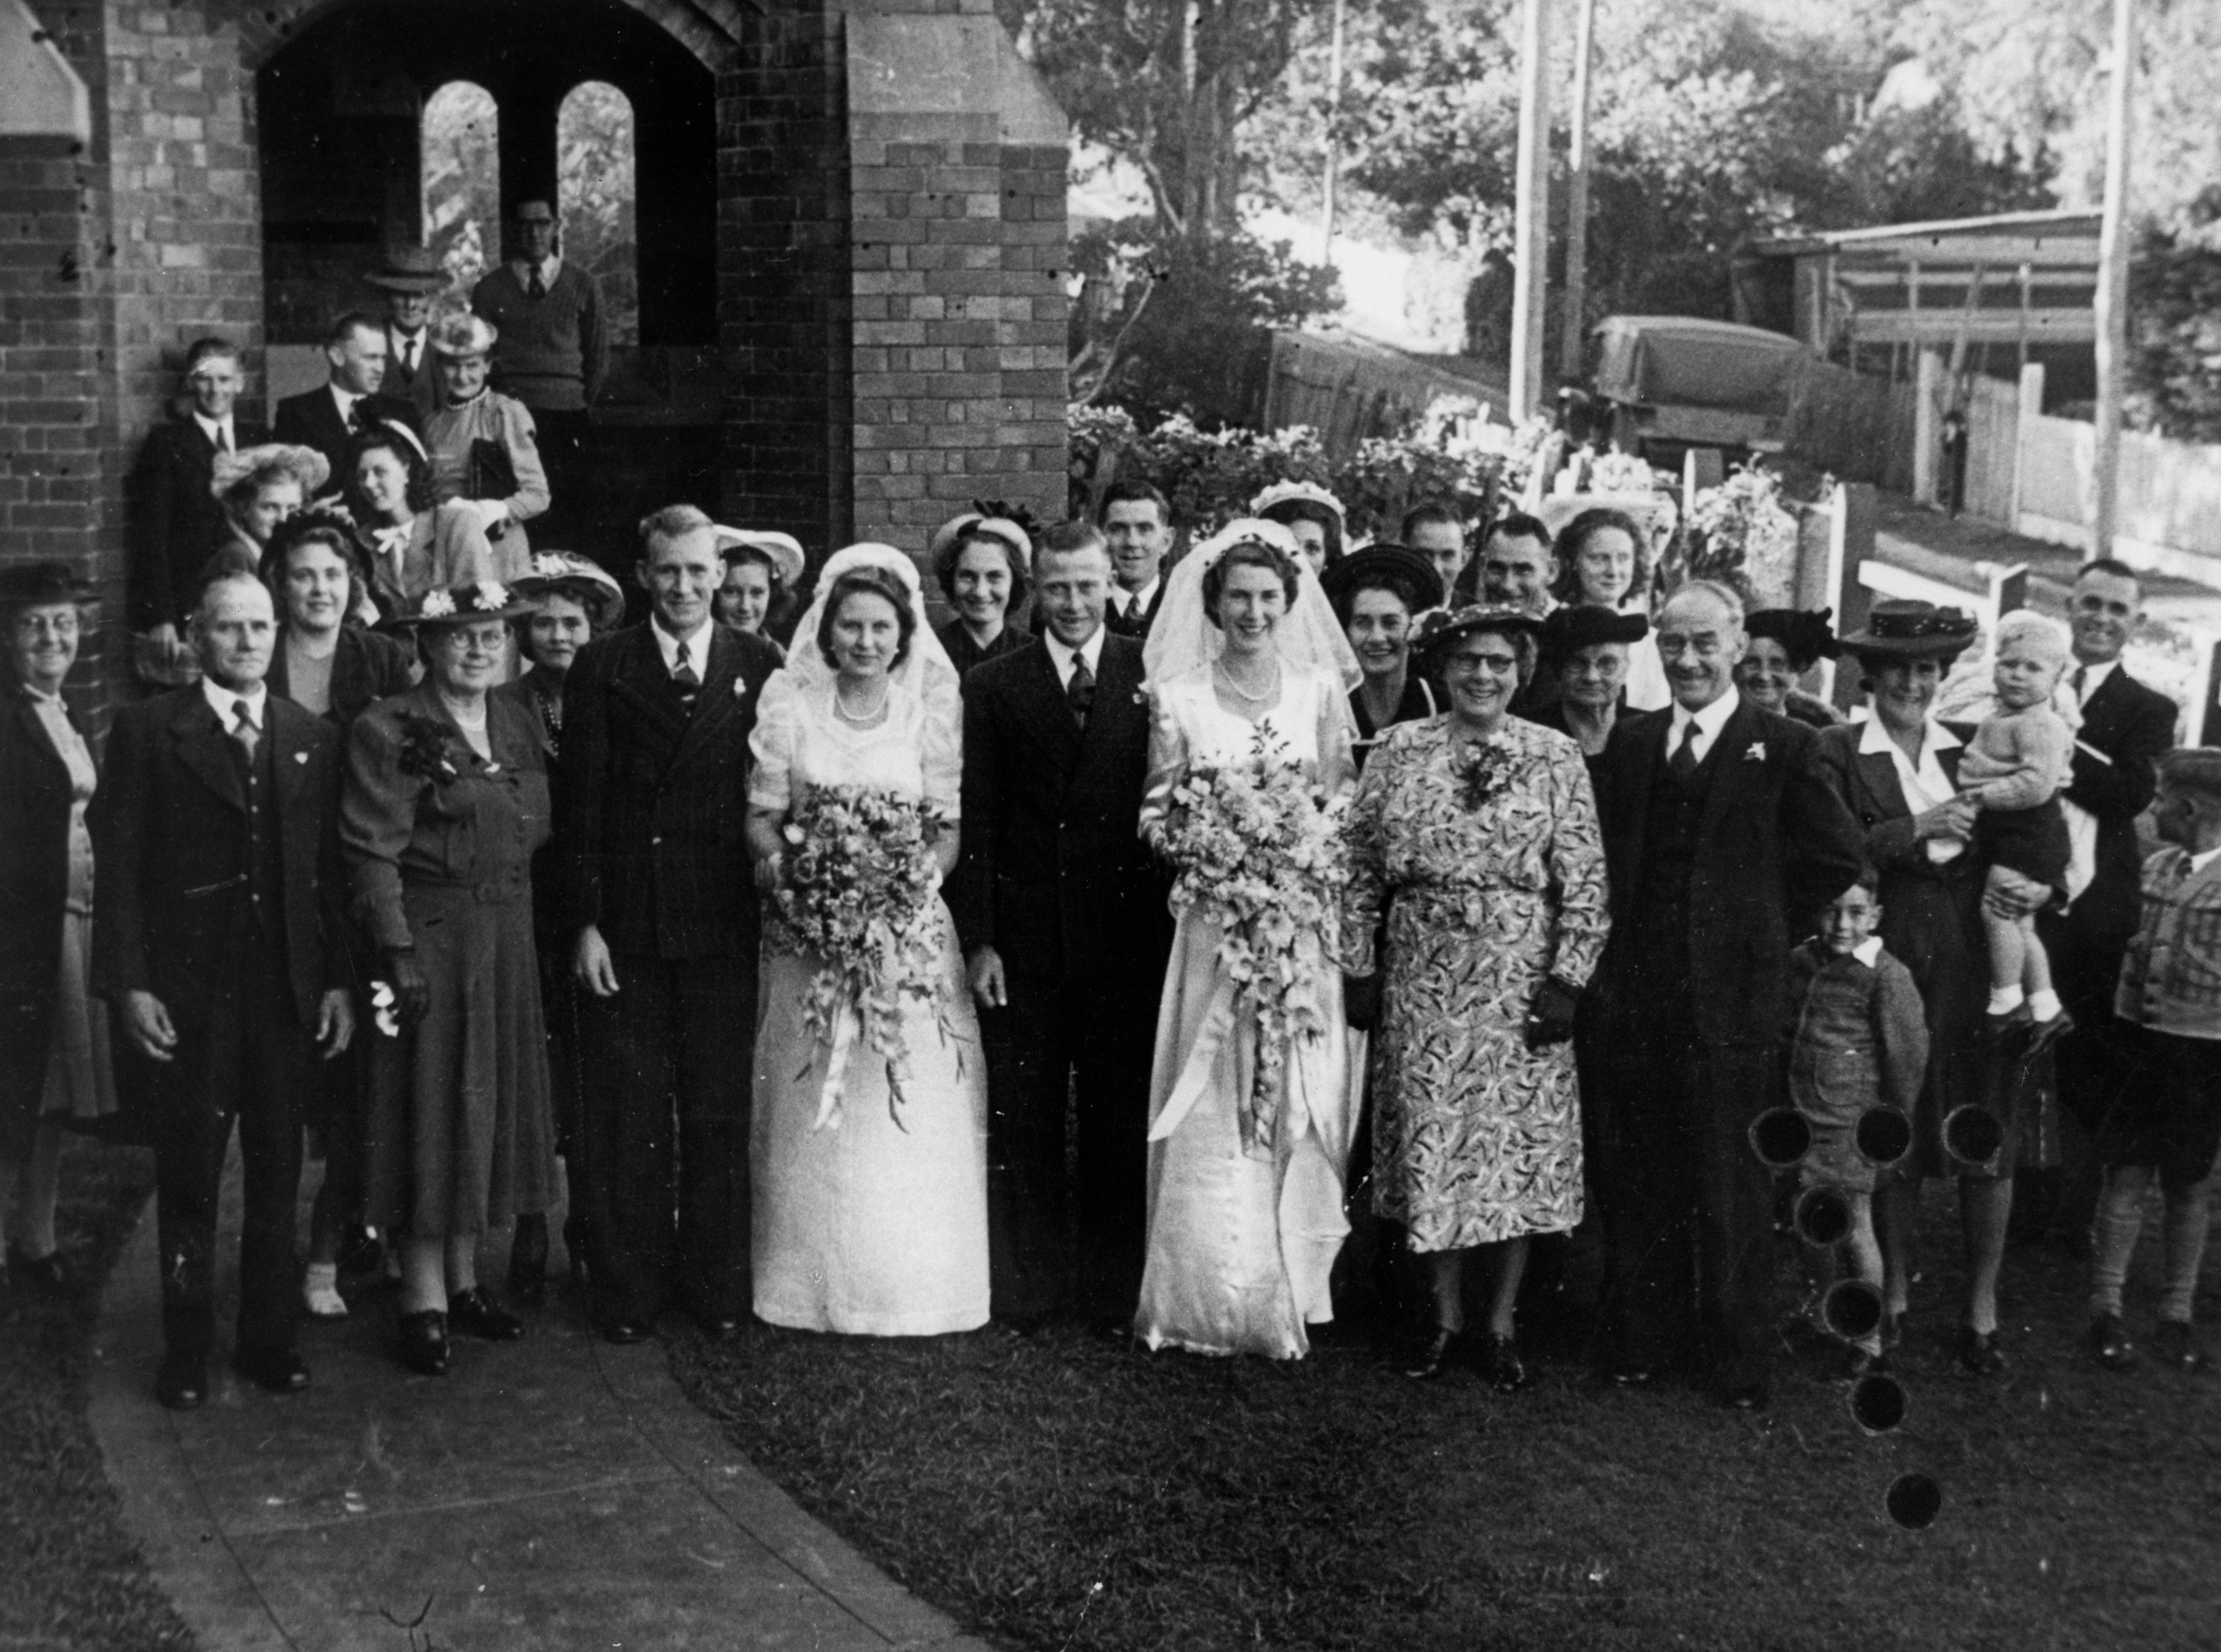 Two brides with large bouquets stand next to their grooms in front of a large group of people oustide a church